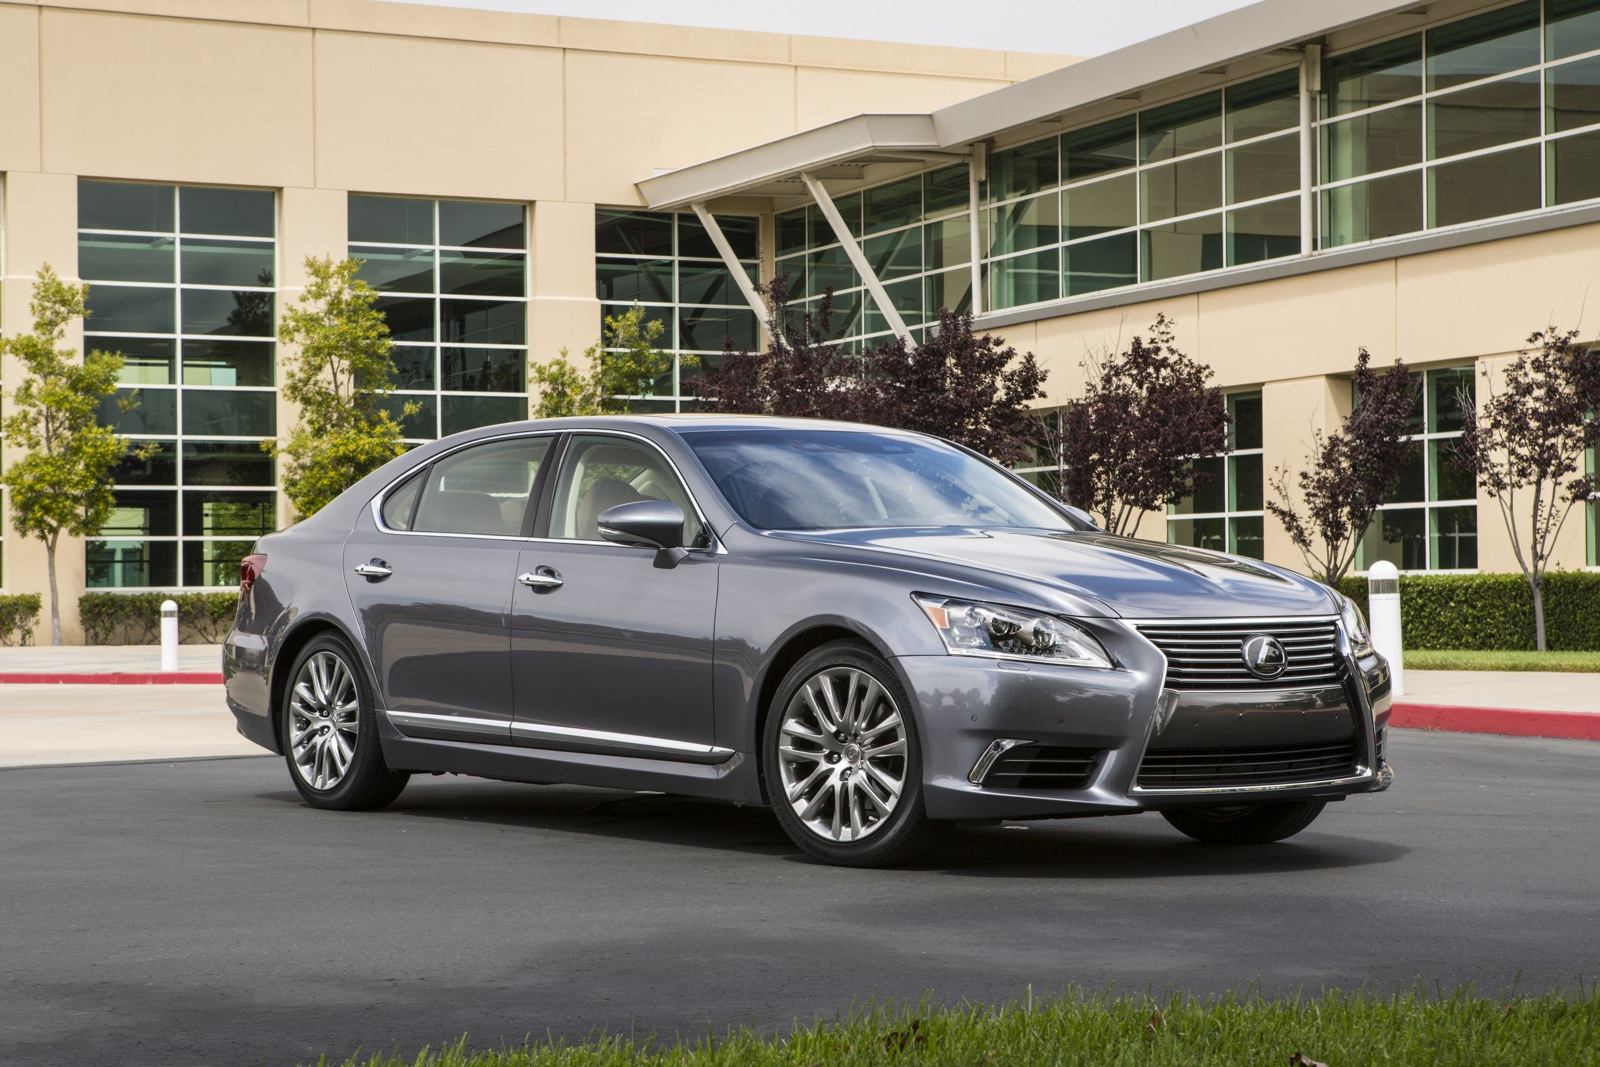 Lexus LS luxurious car